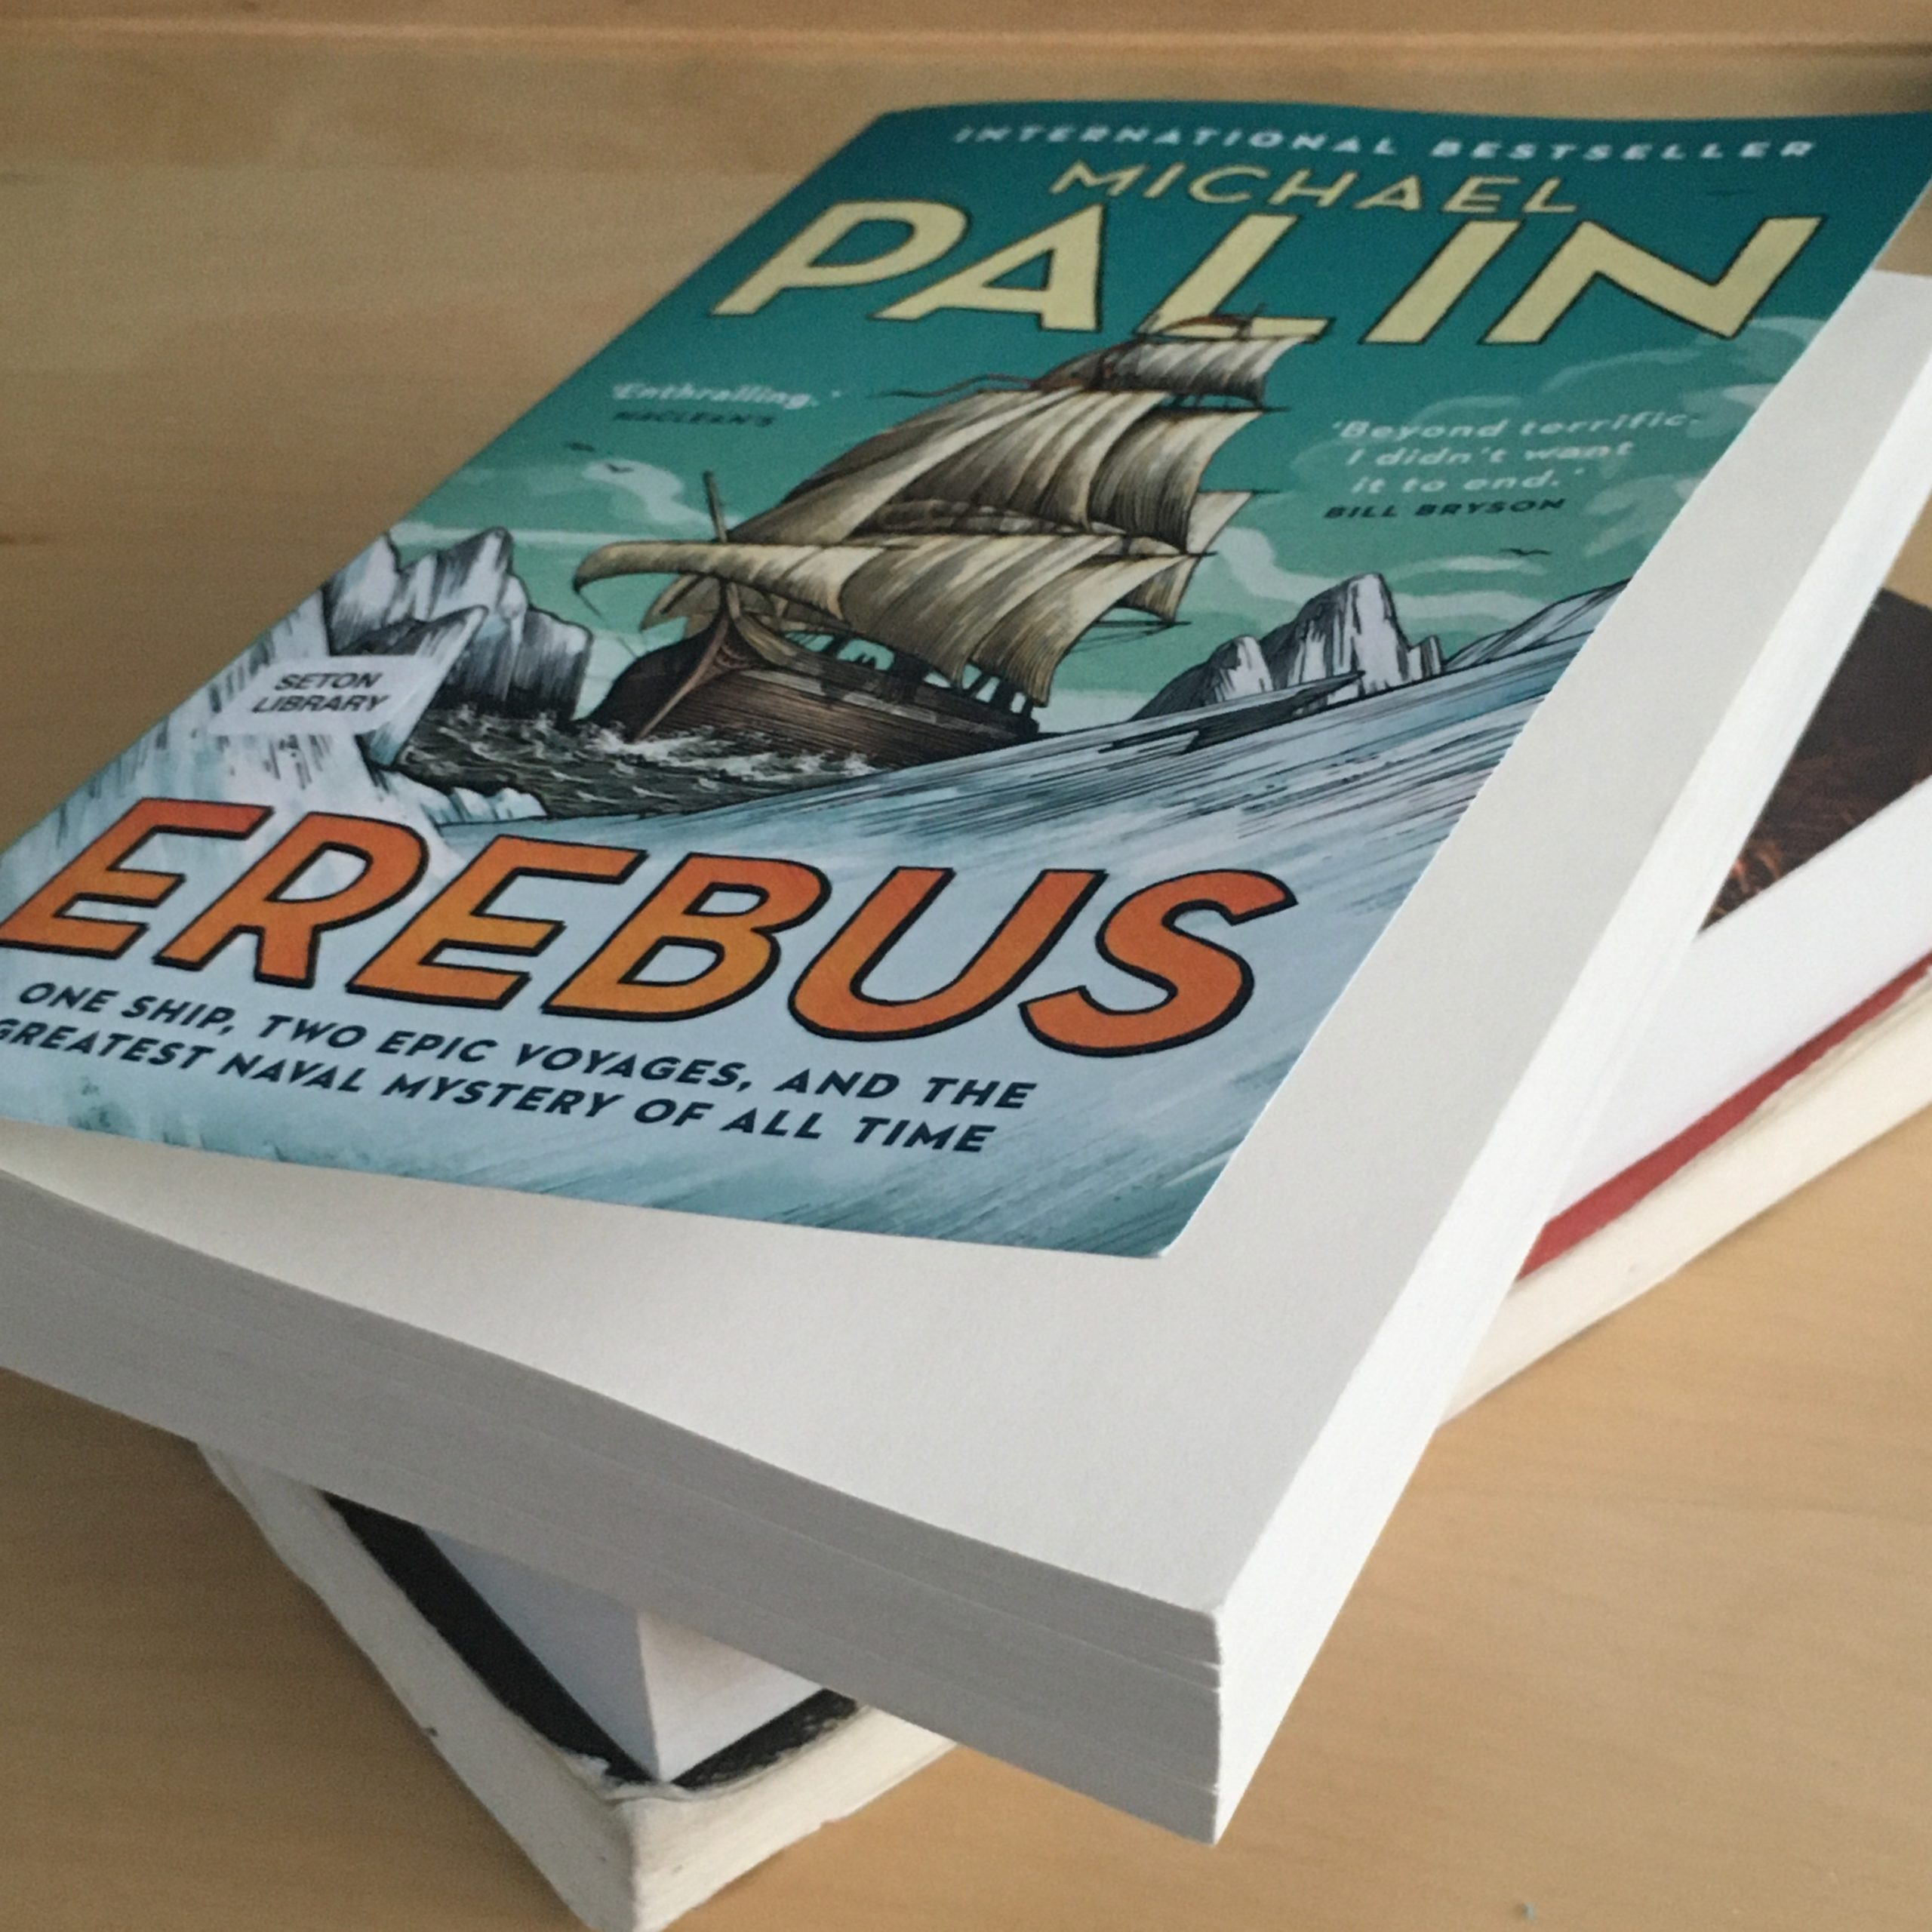 "No Adverbs in this book. Pictured is ""Erebus,"" a nonfiction book by Michael Palin."